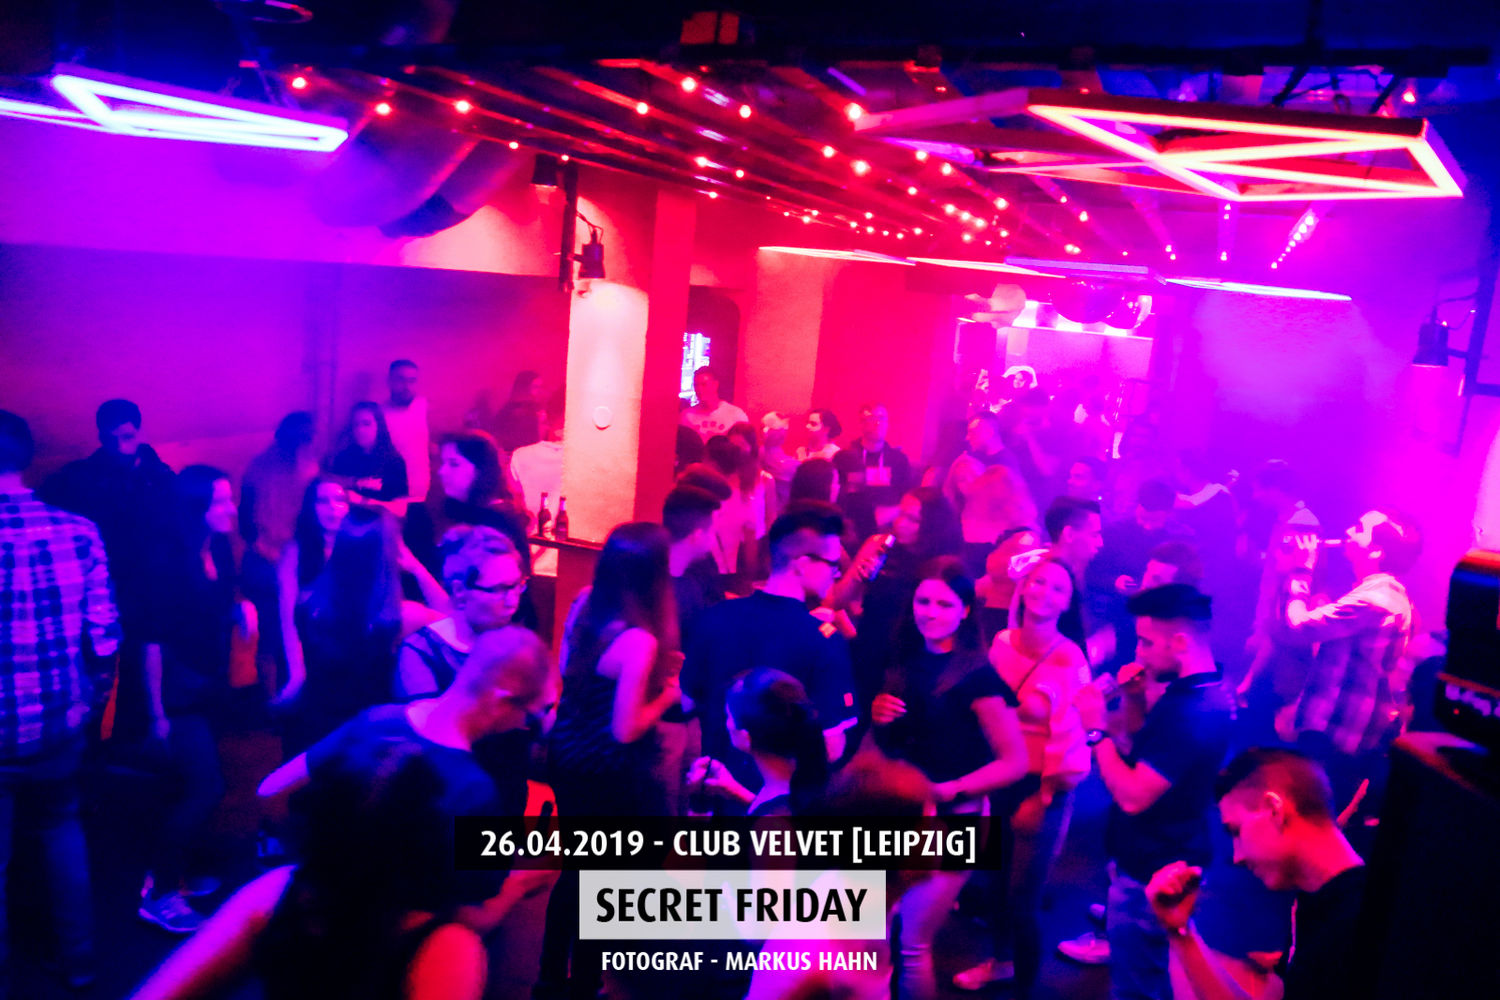 secret-firday-club-velvet (1)